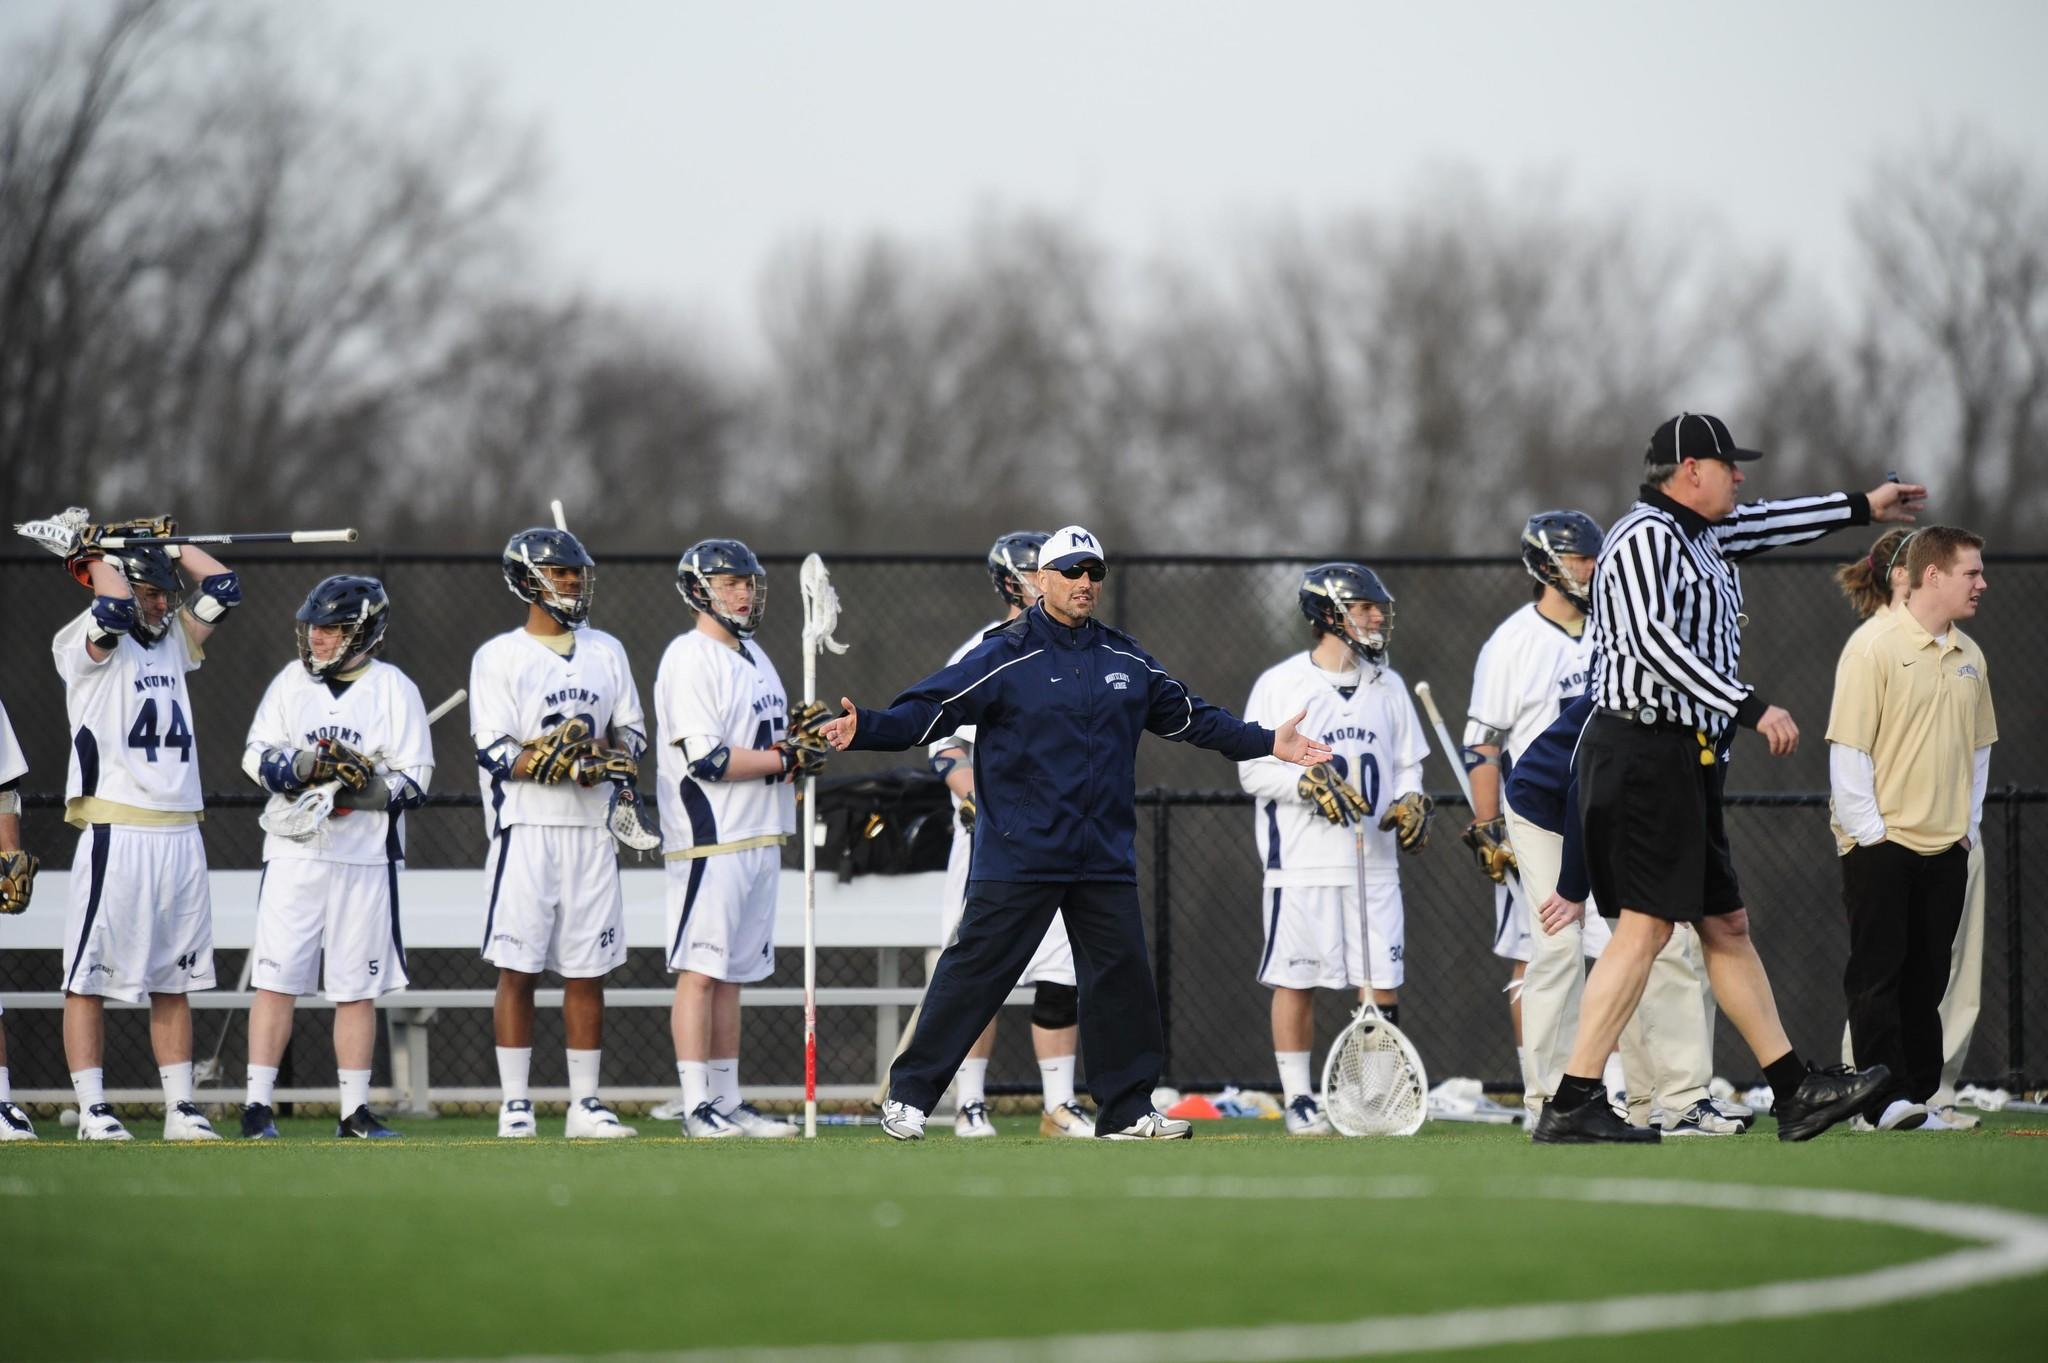 Mount St. Mary's men's lacrosse coach Tom Gravante must replace a heavily depleted offense this season.